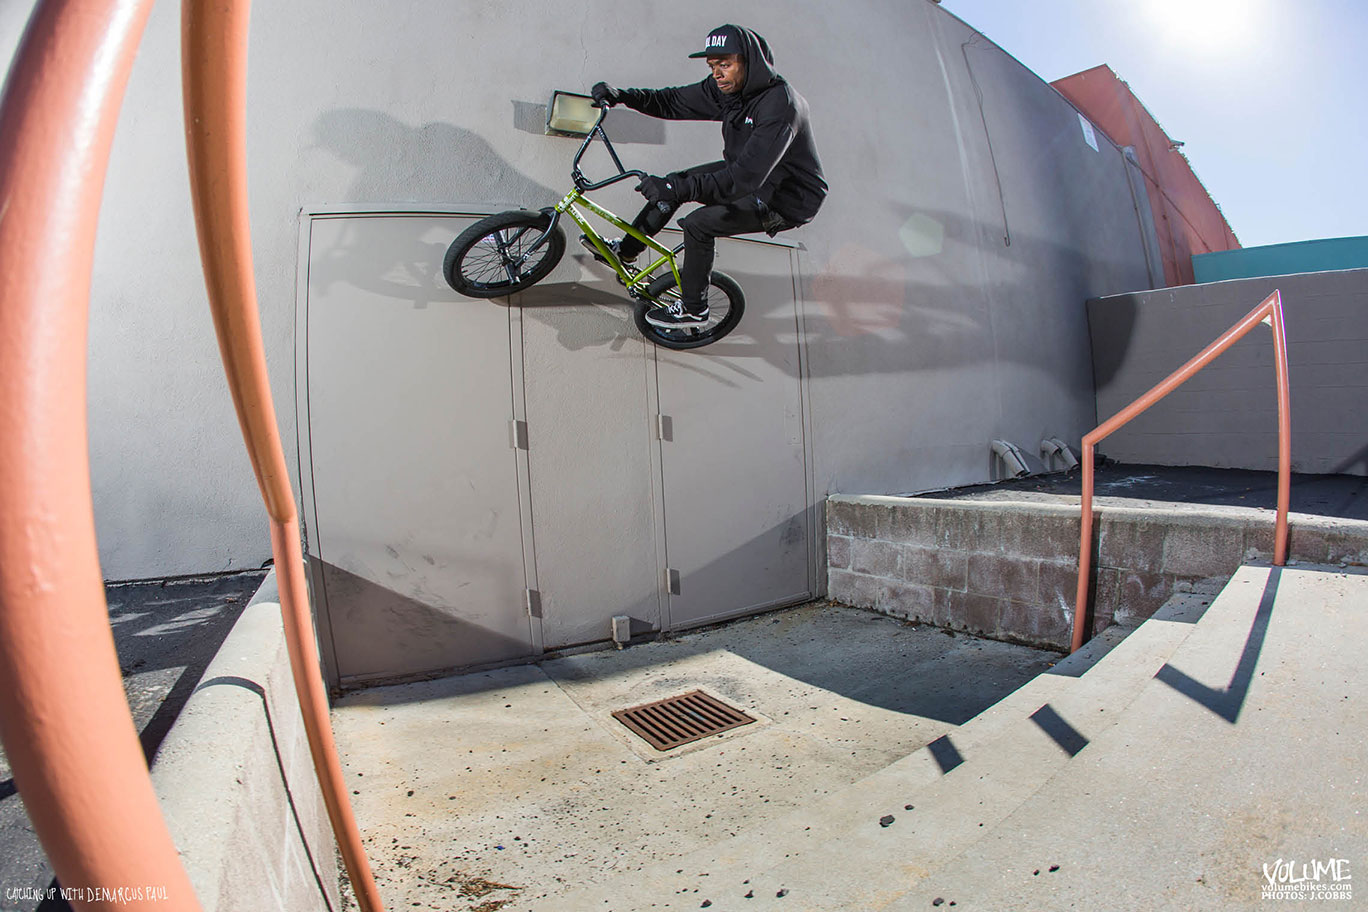 CATCHING UP WITH DEMARCUS PUAL: Wallride gap